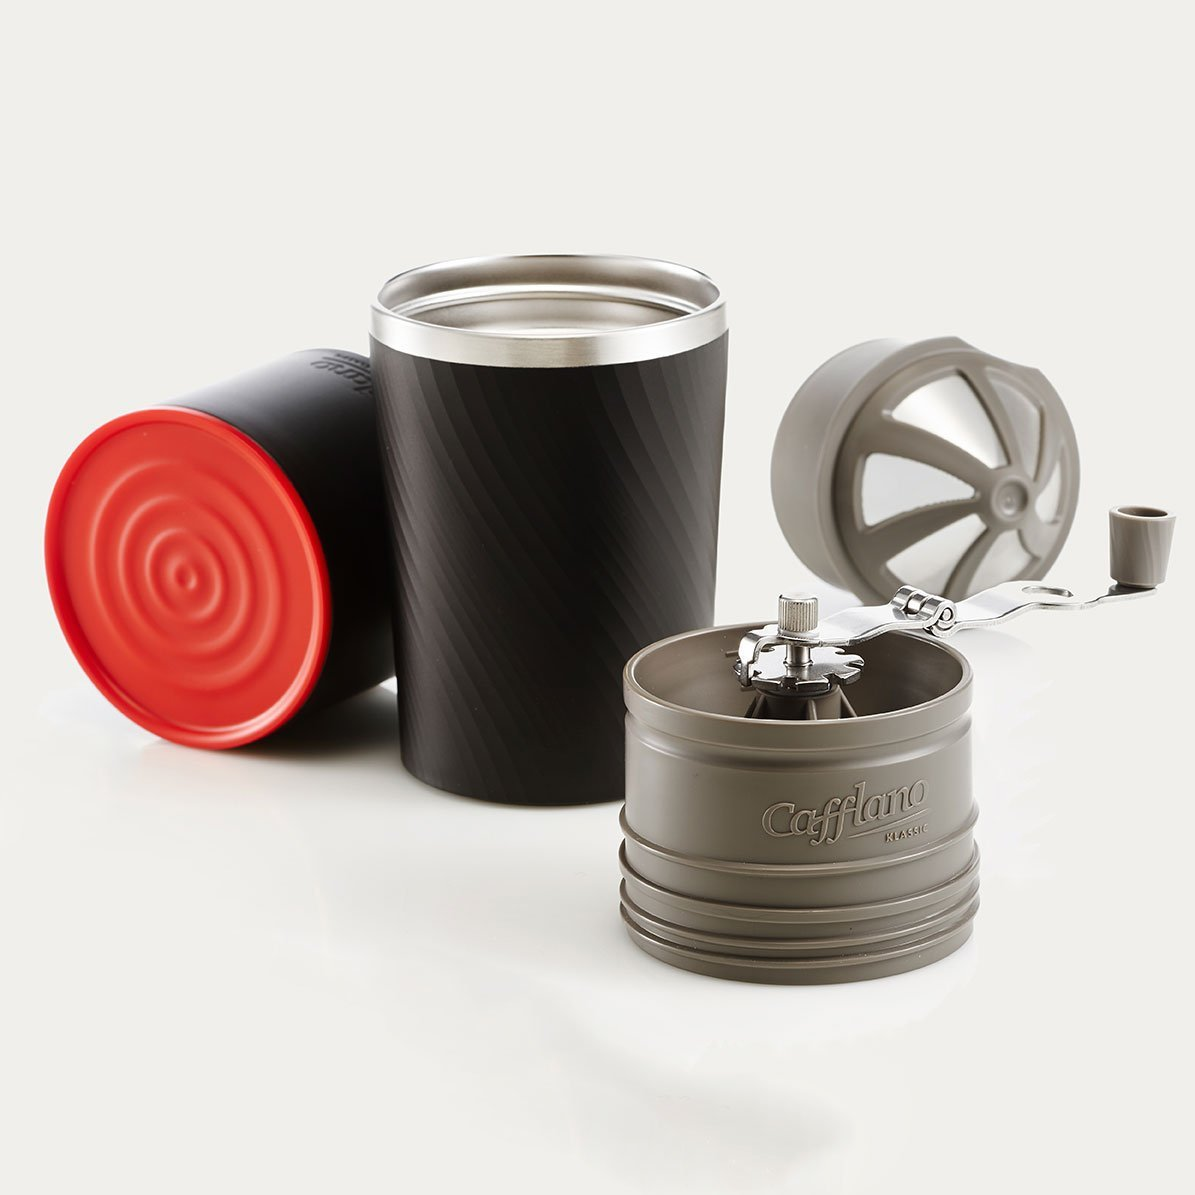 Cafflano Drip Coffee Maker Hand Mill Grinder Tumbler All-in-one dripper Korea eBay